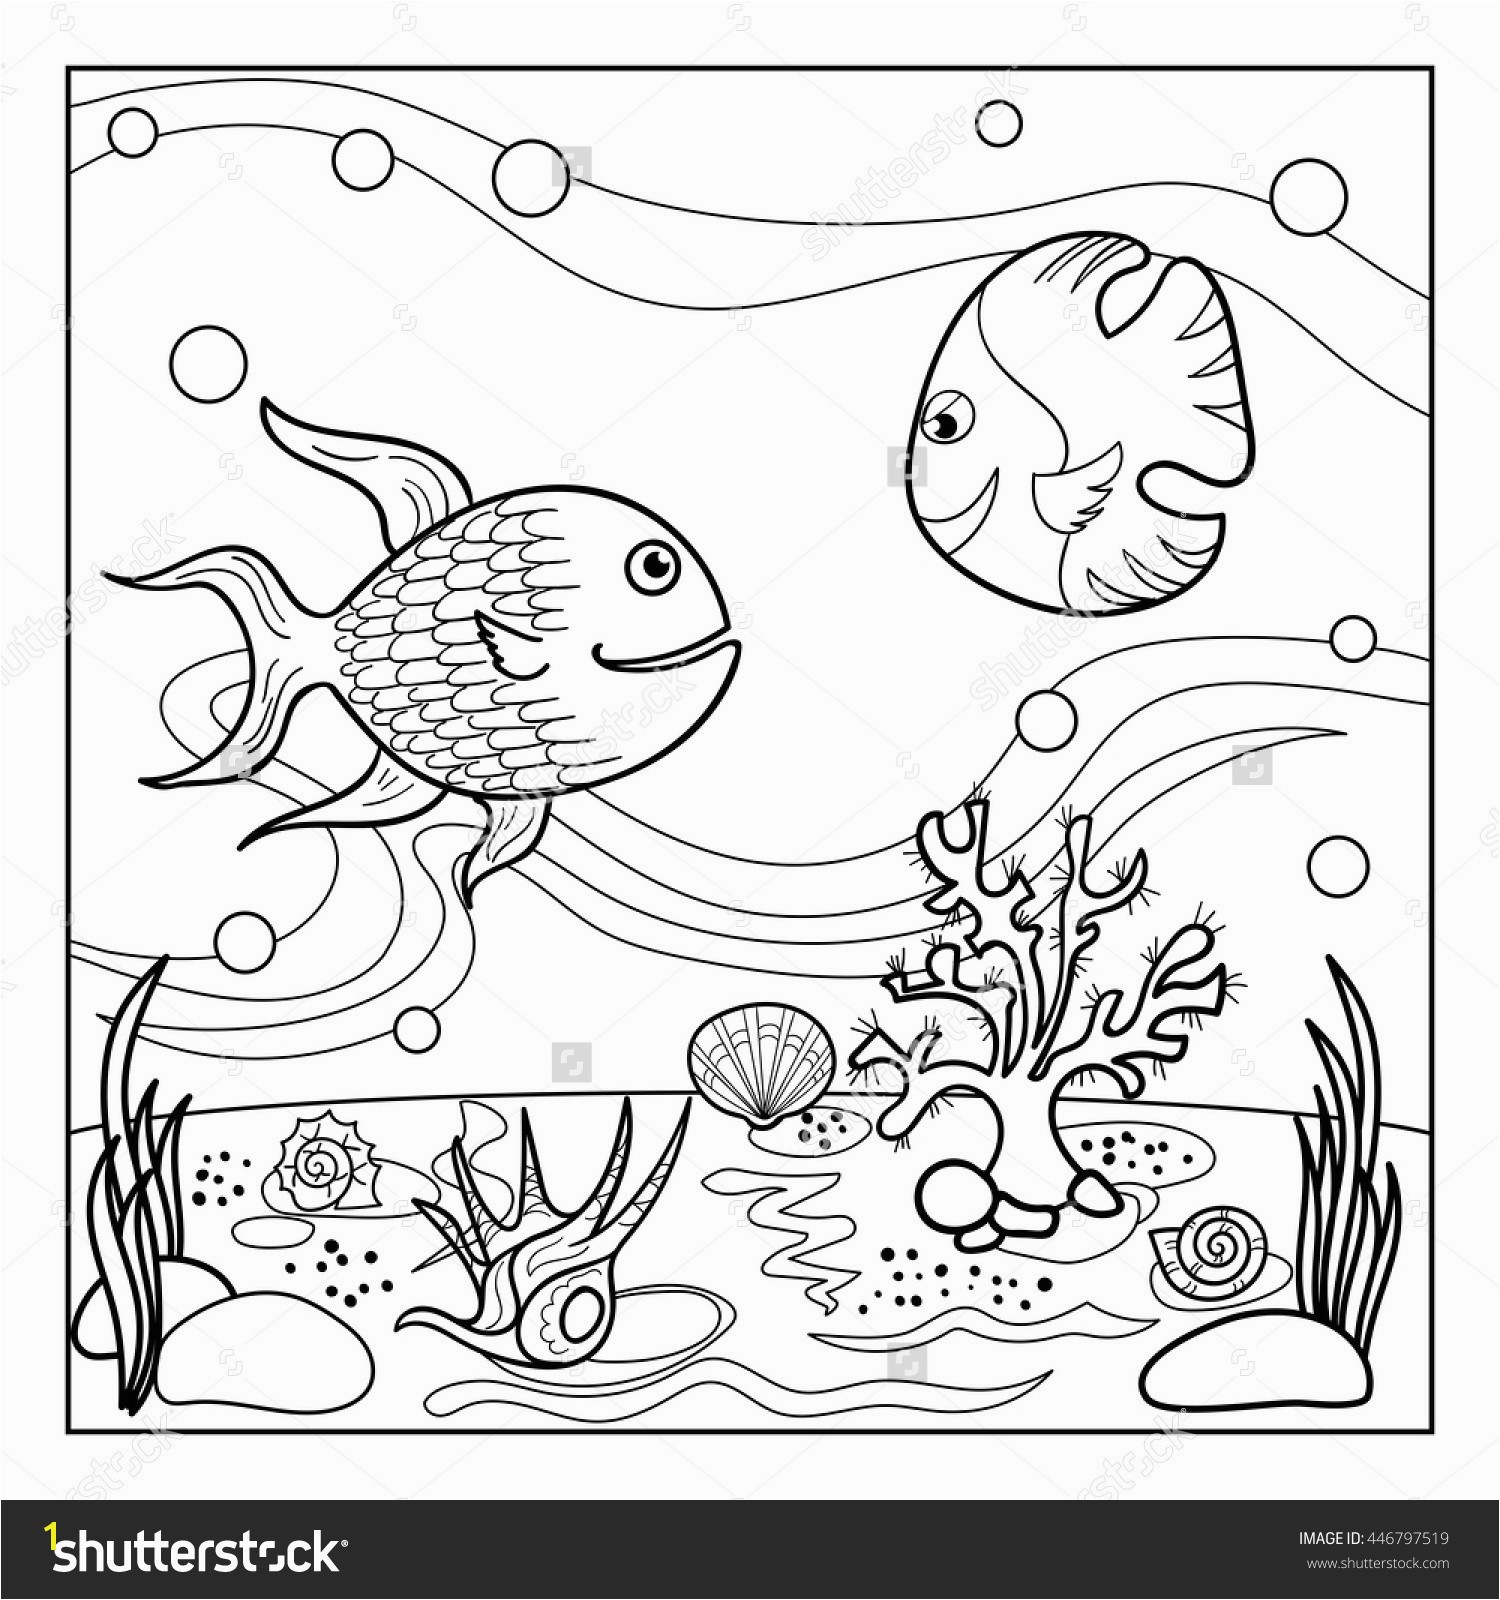 Cyndaquil Coloring Page Mangle Coloring Pages New Witch Coloring Page Inspirational Crayola